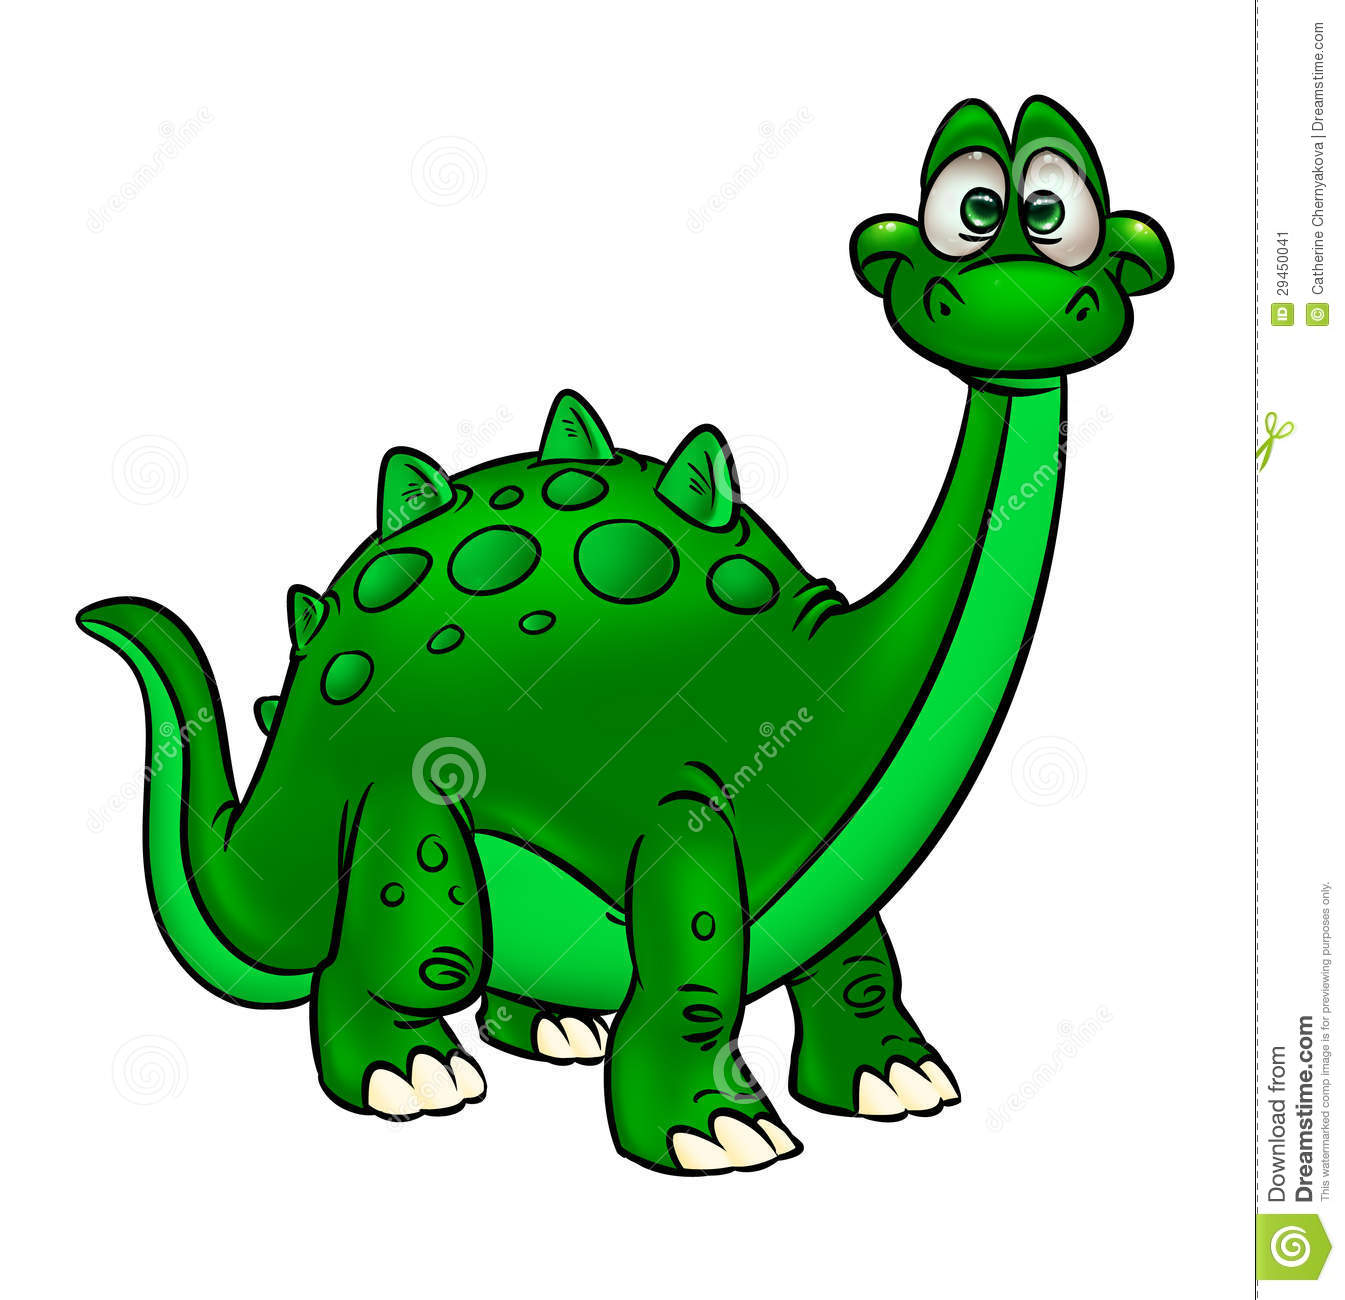 76 best images about Dinosaurs Galore! on Pinterest.